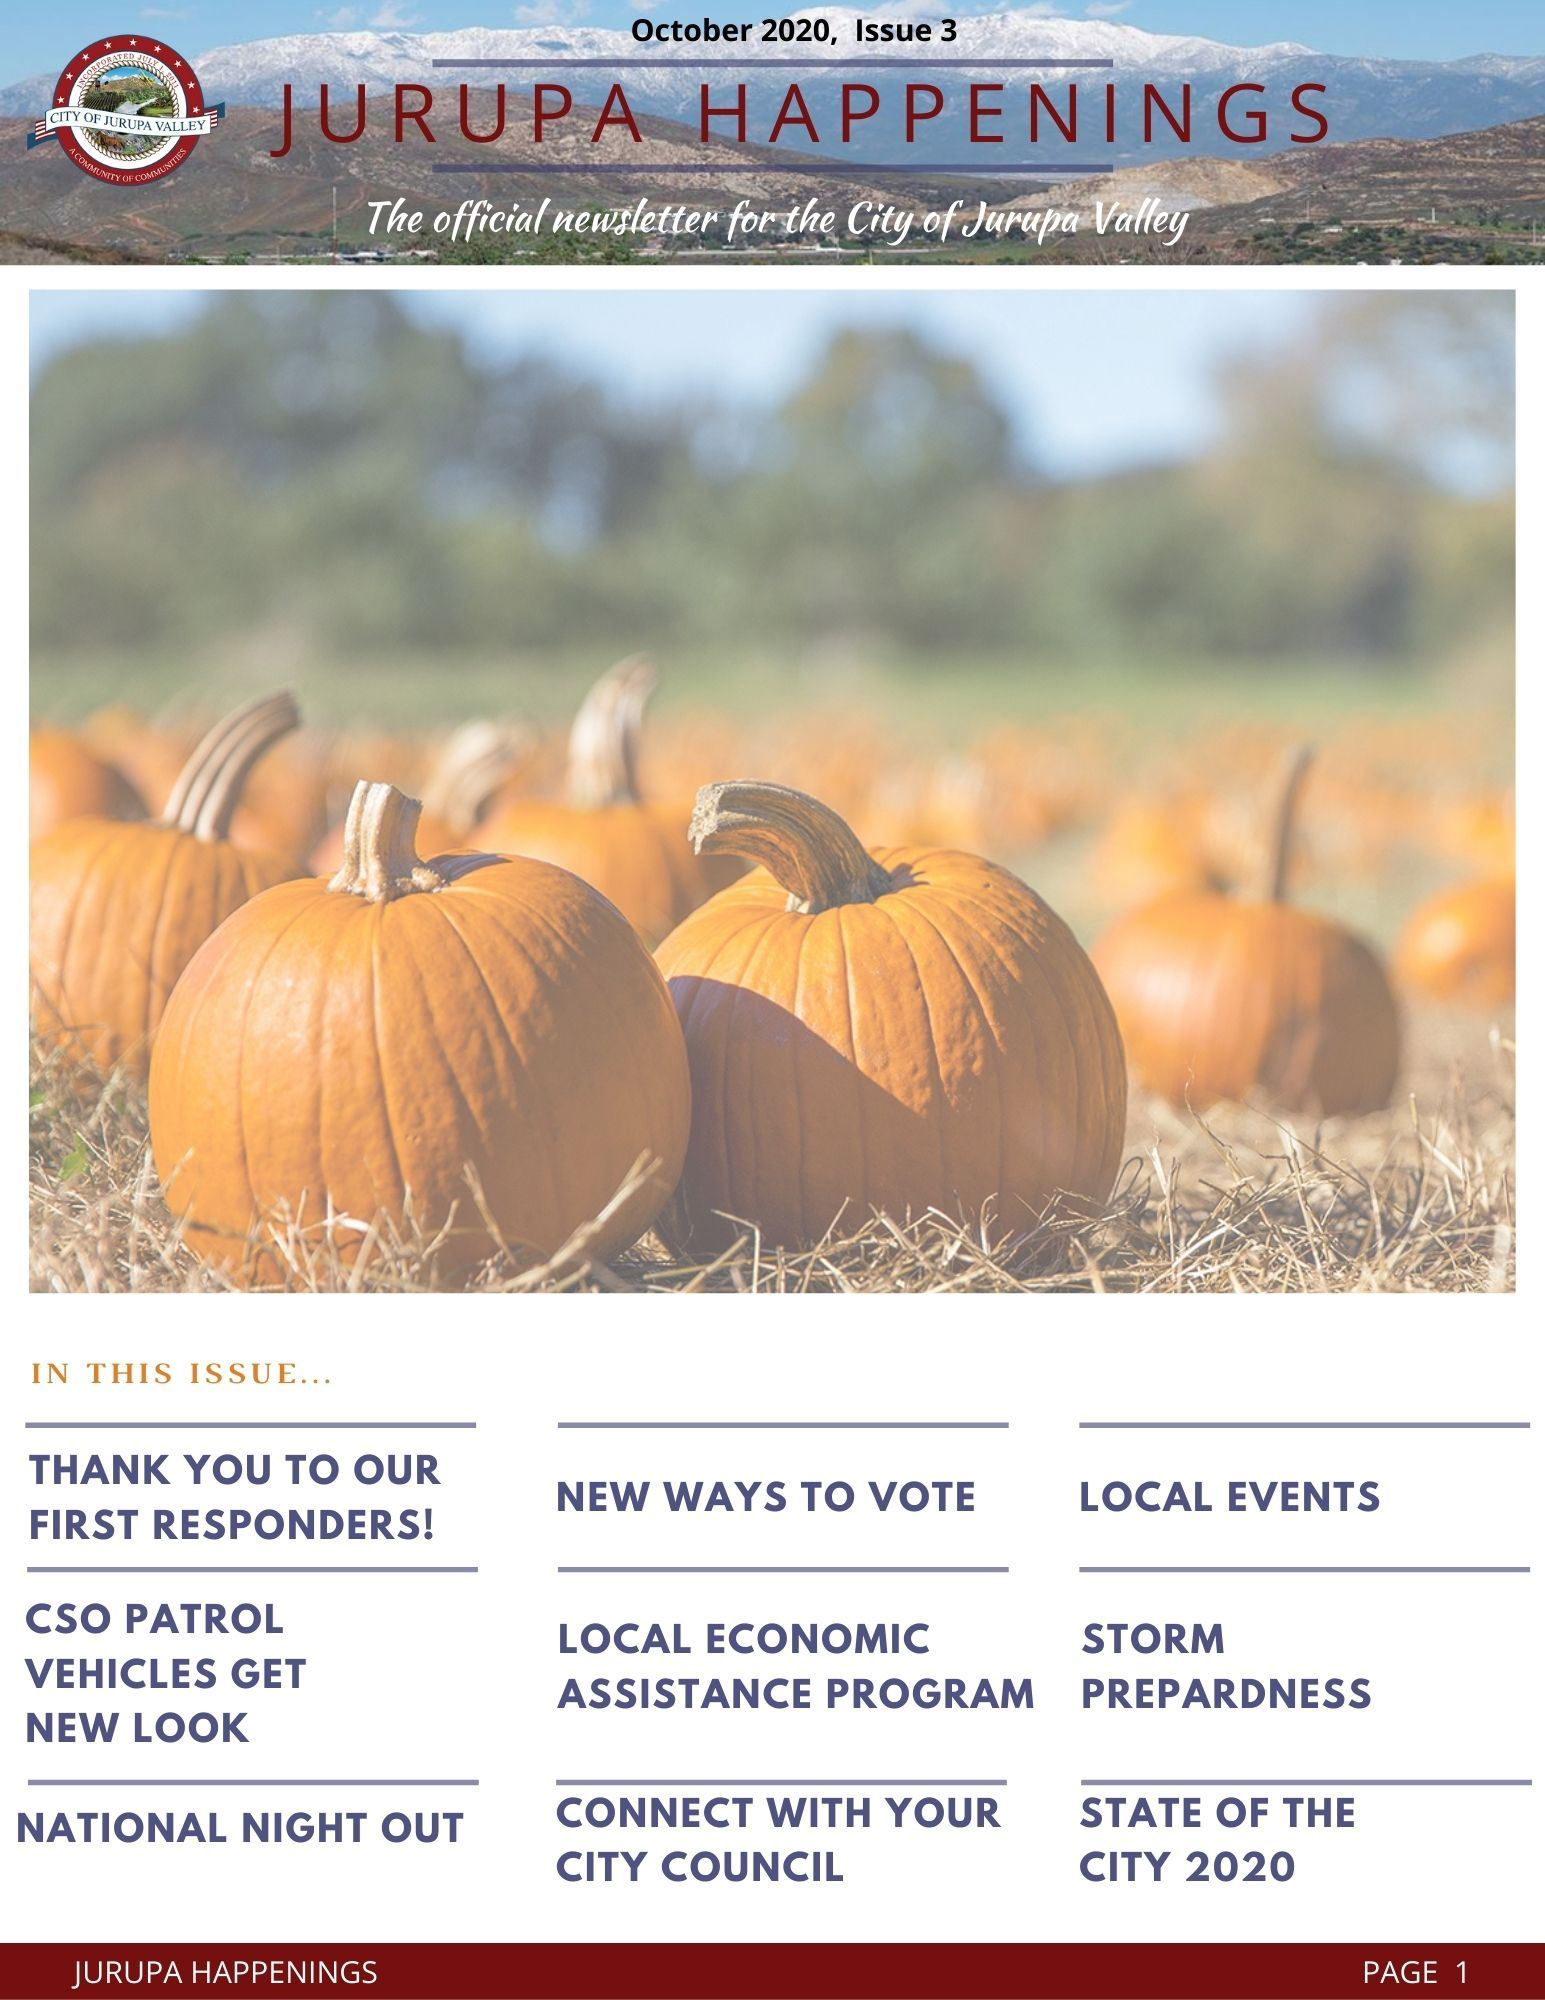 Copy of Jurupa Highlights eNewsletter - issue 3 October 2020  Opens in new window